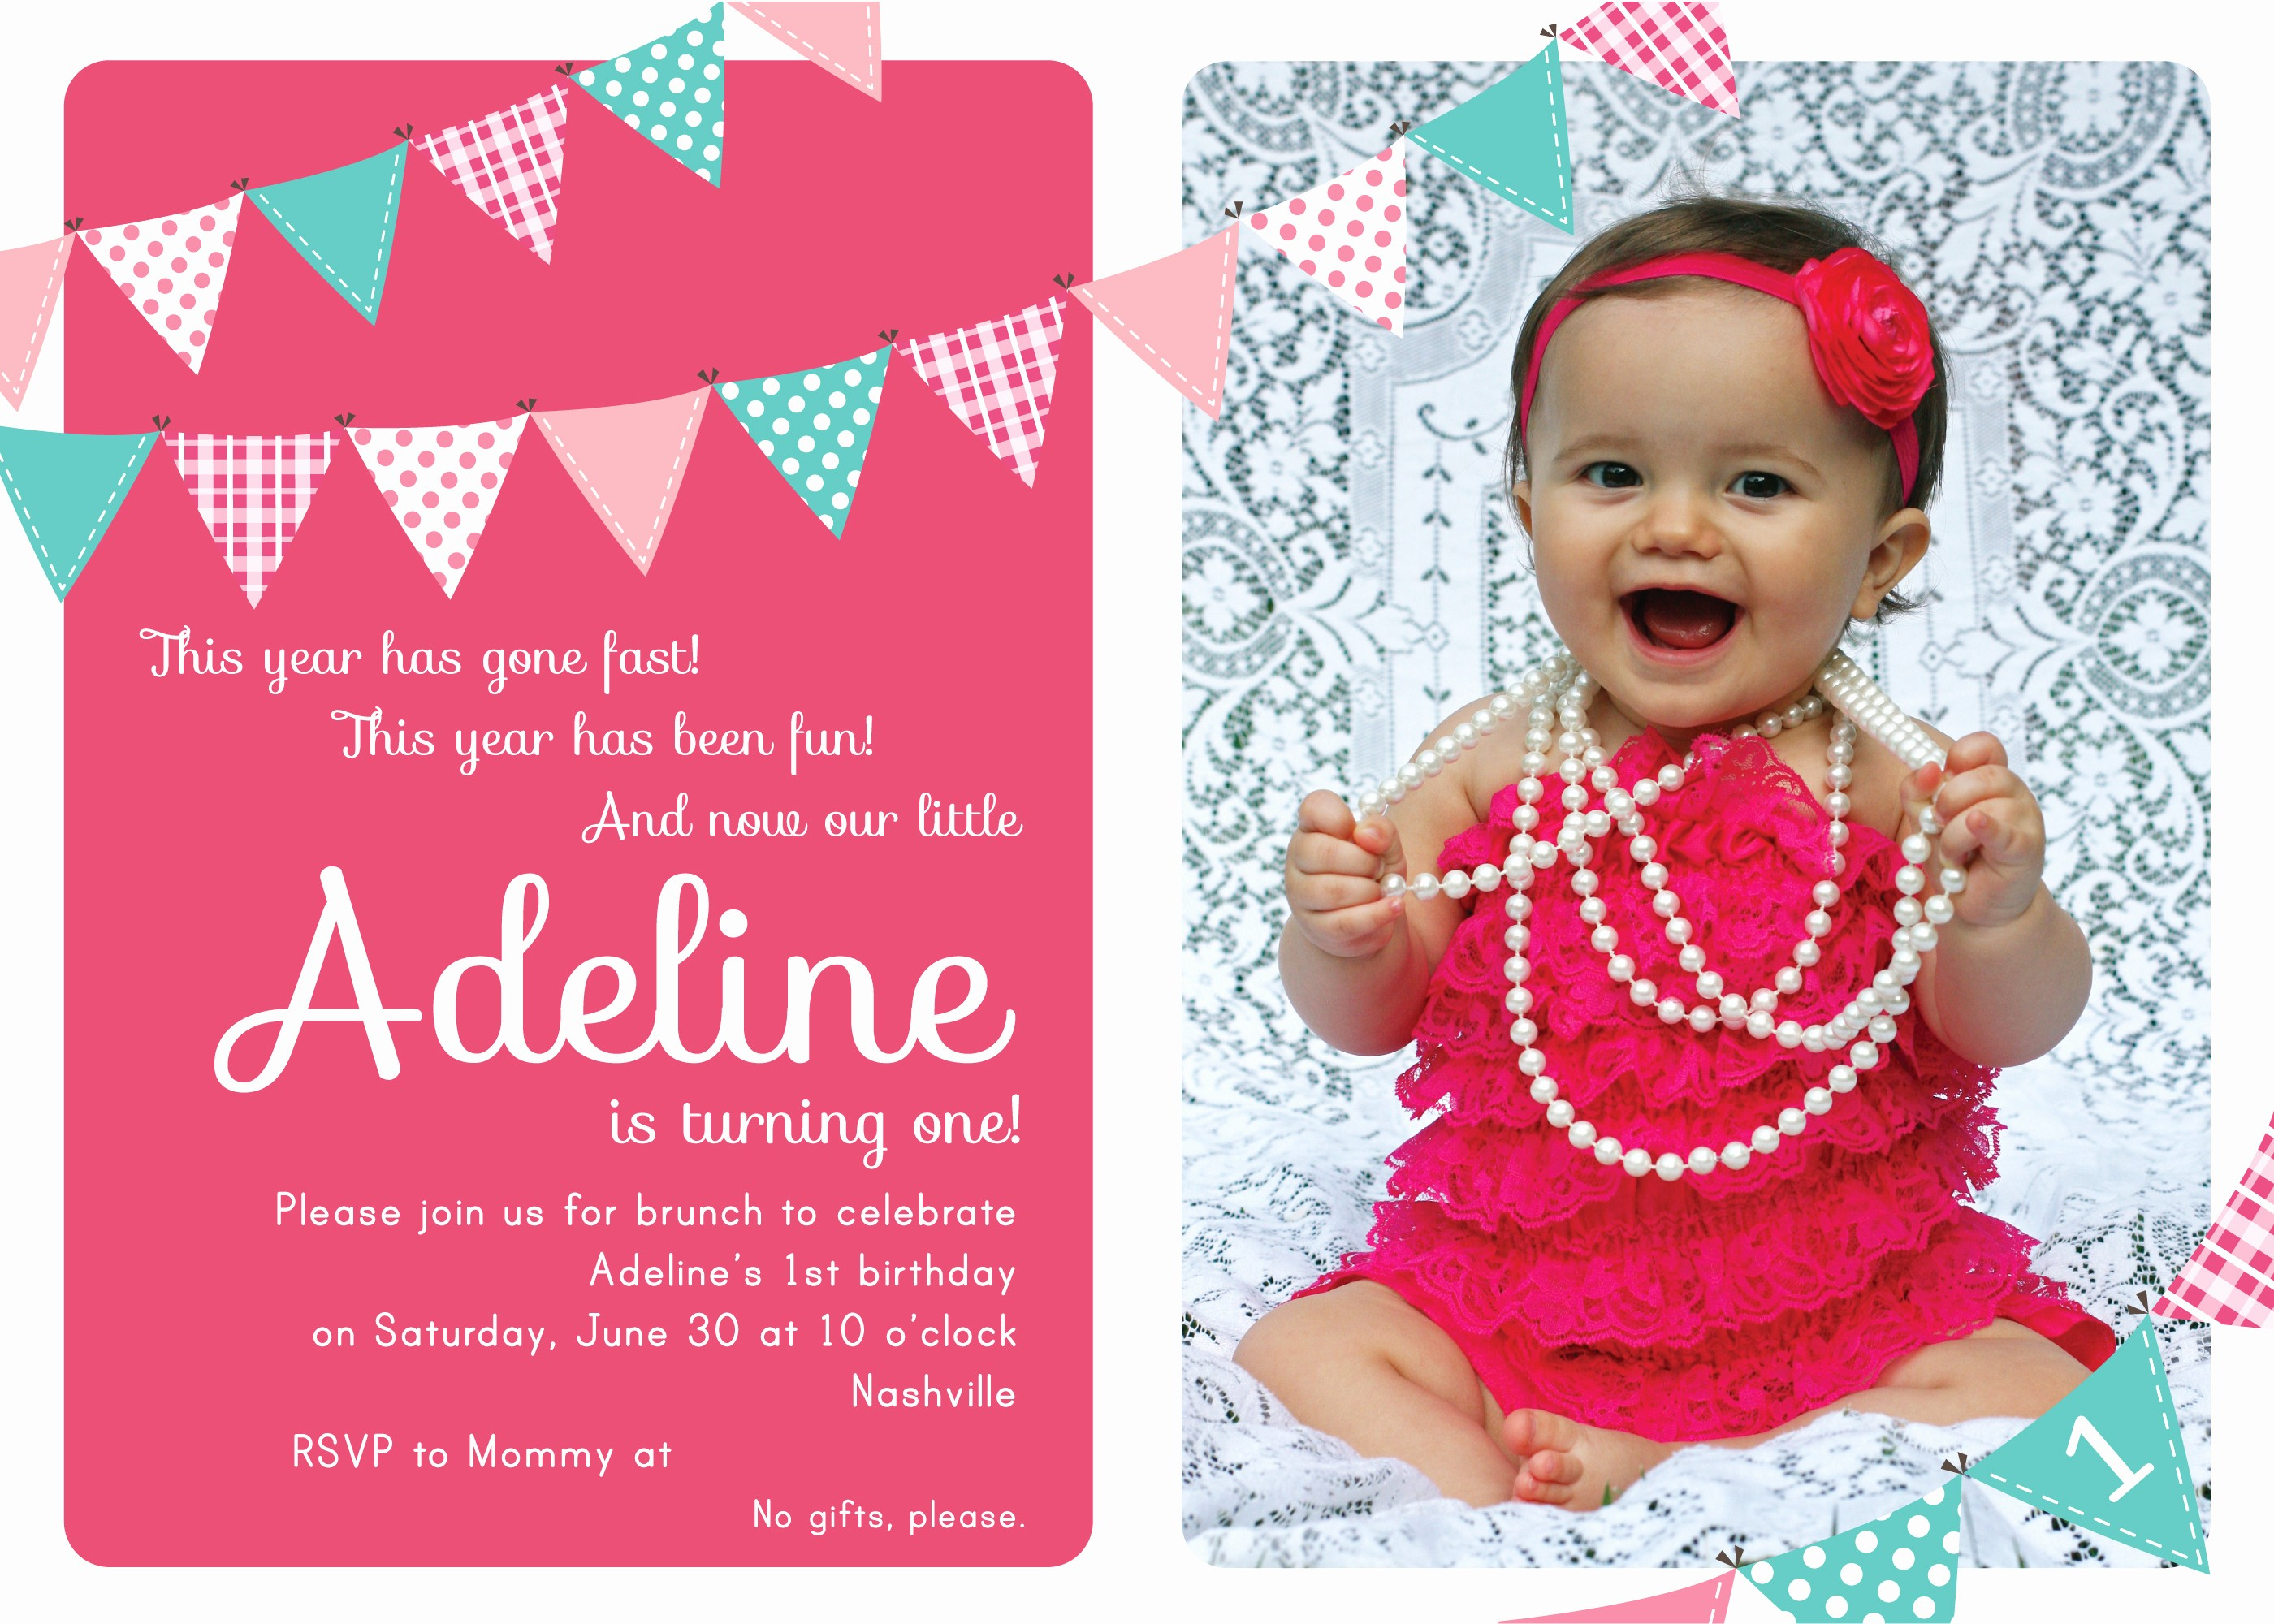 Invitation format for Birthday Party Lovely First Birthday Party Invitation Ideas – Bagvania Free